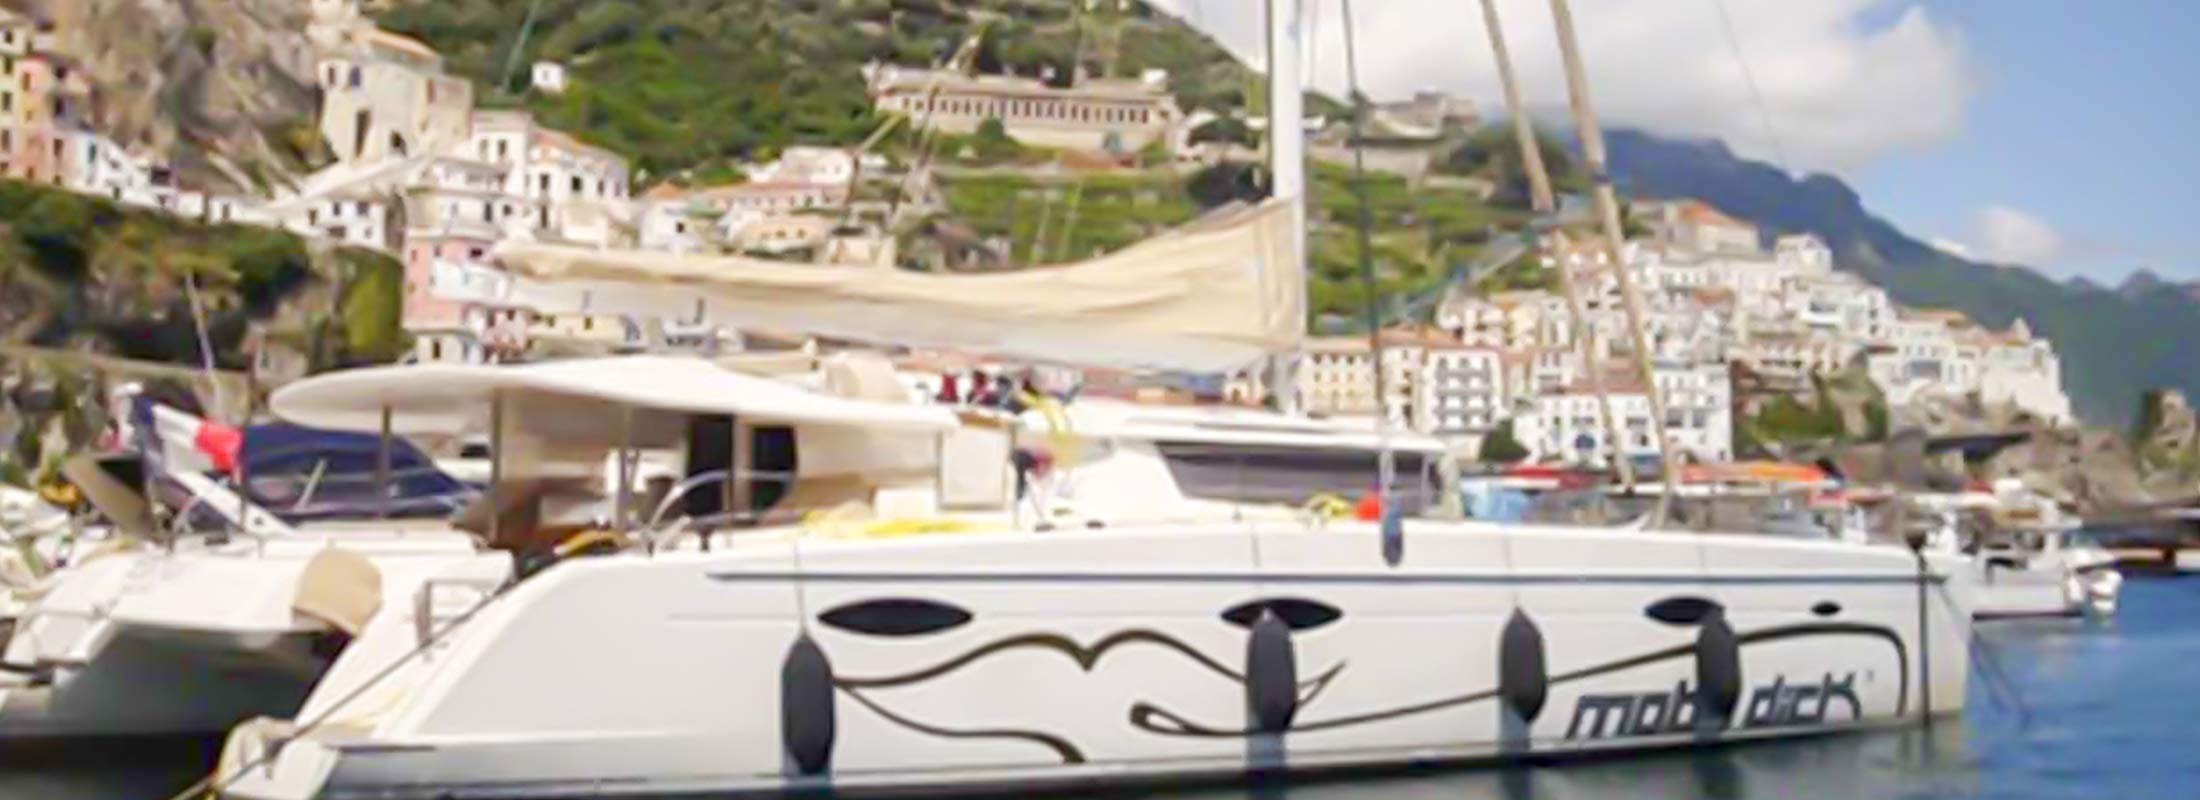 Moby Dick Sailing Yacht for Charter Mediterranean slider 2